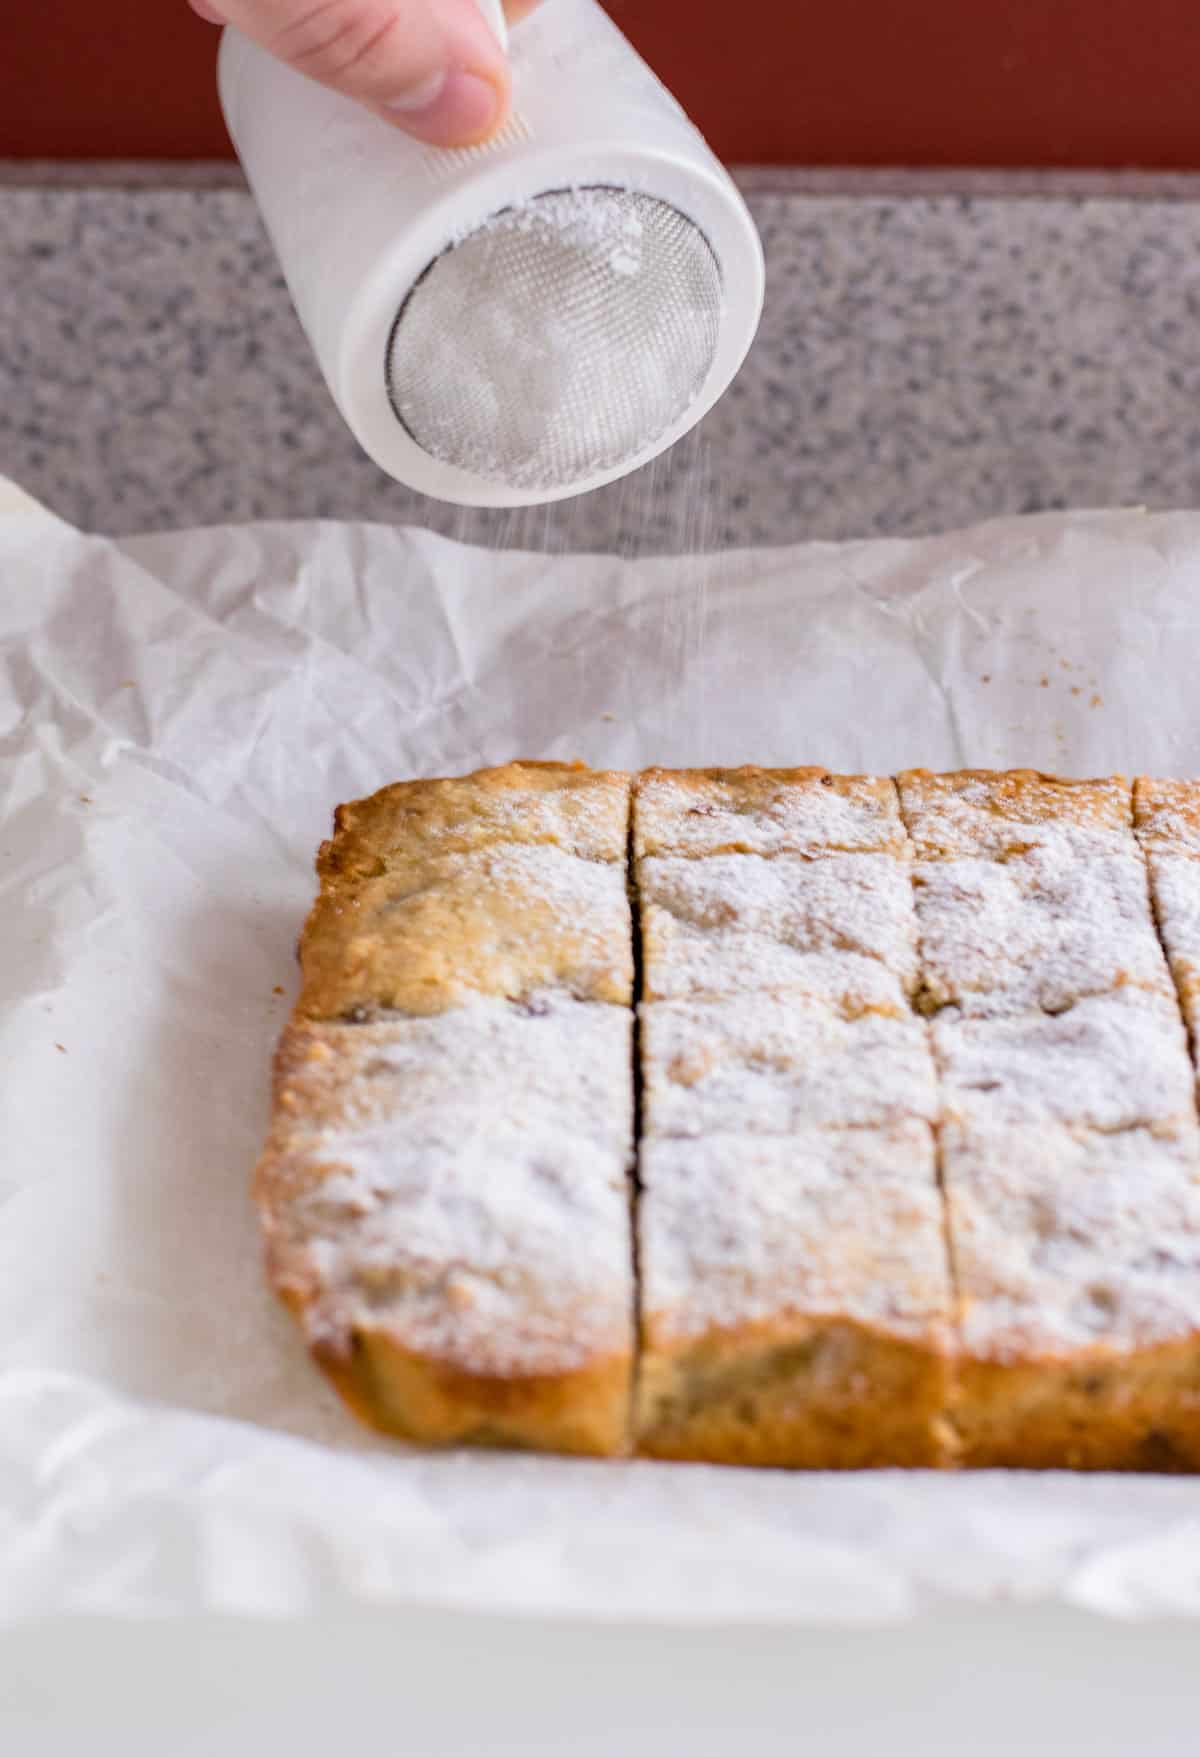 sprinkling confectioners sugar on date-nut bars